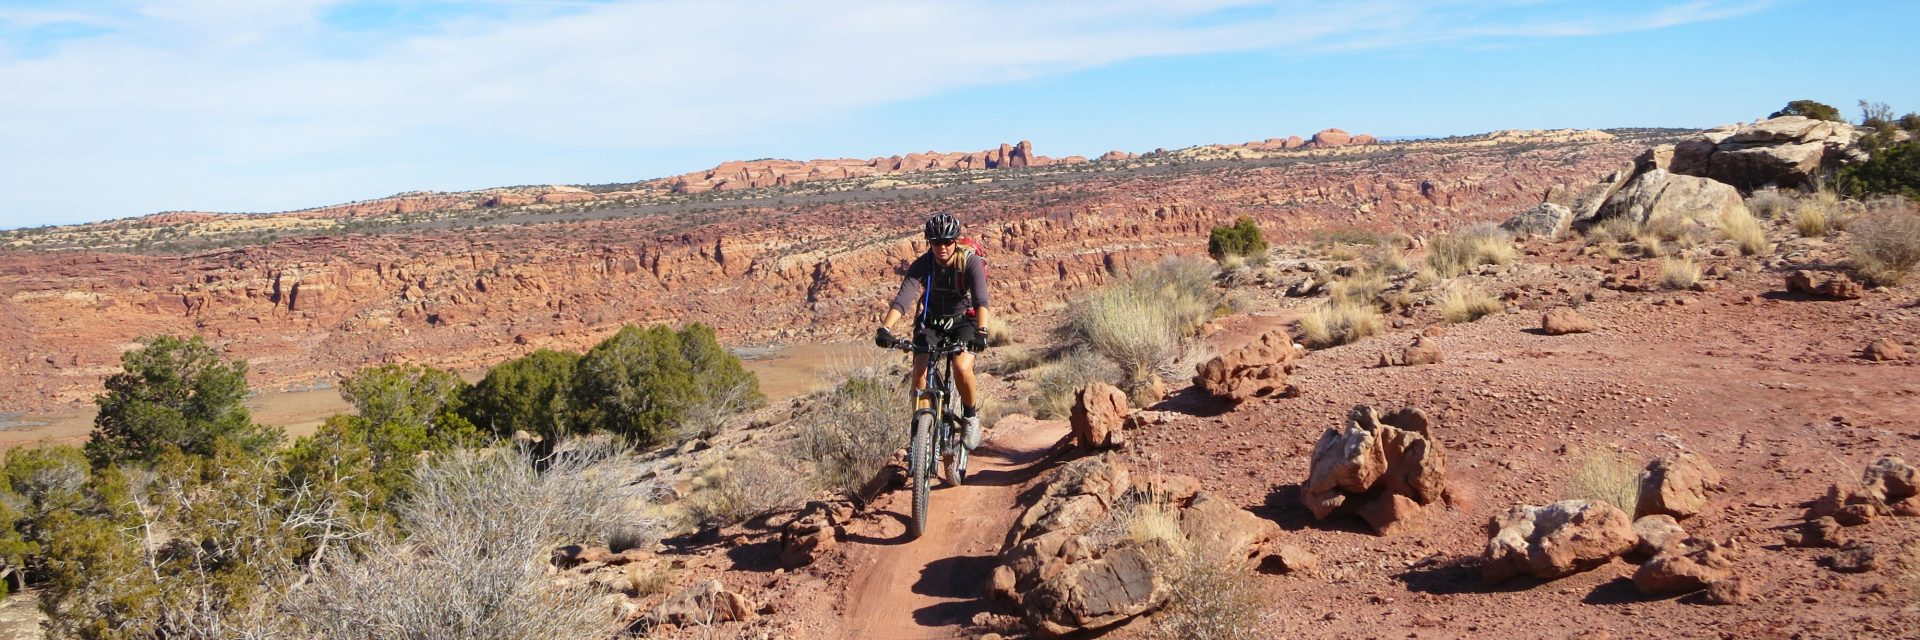 A mountain bike rider rolls along the top of the ridge on the Alaska section of North Klondike Singletrack above the Salt Valley and Arches National Park in the distance